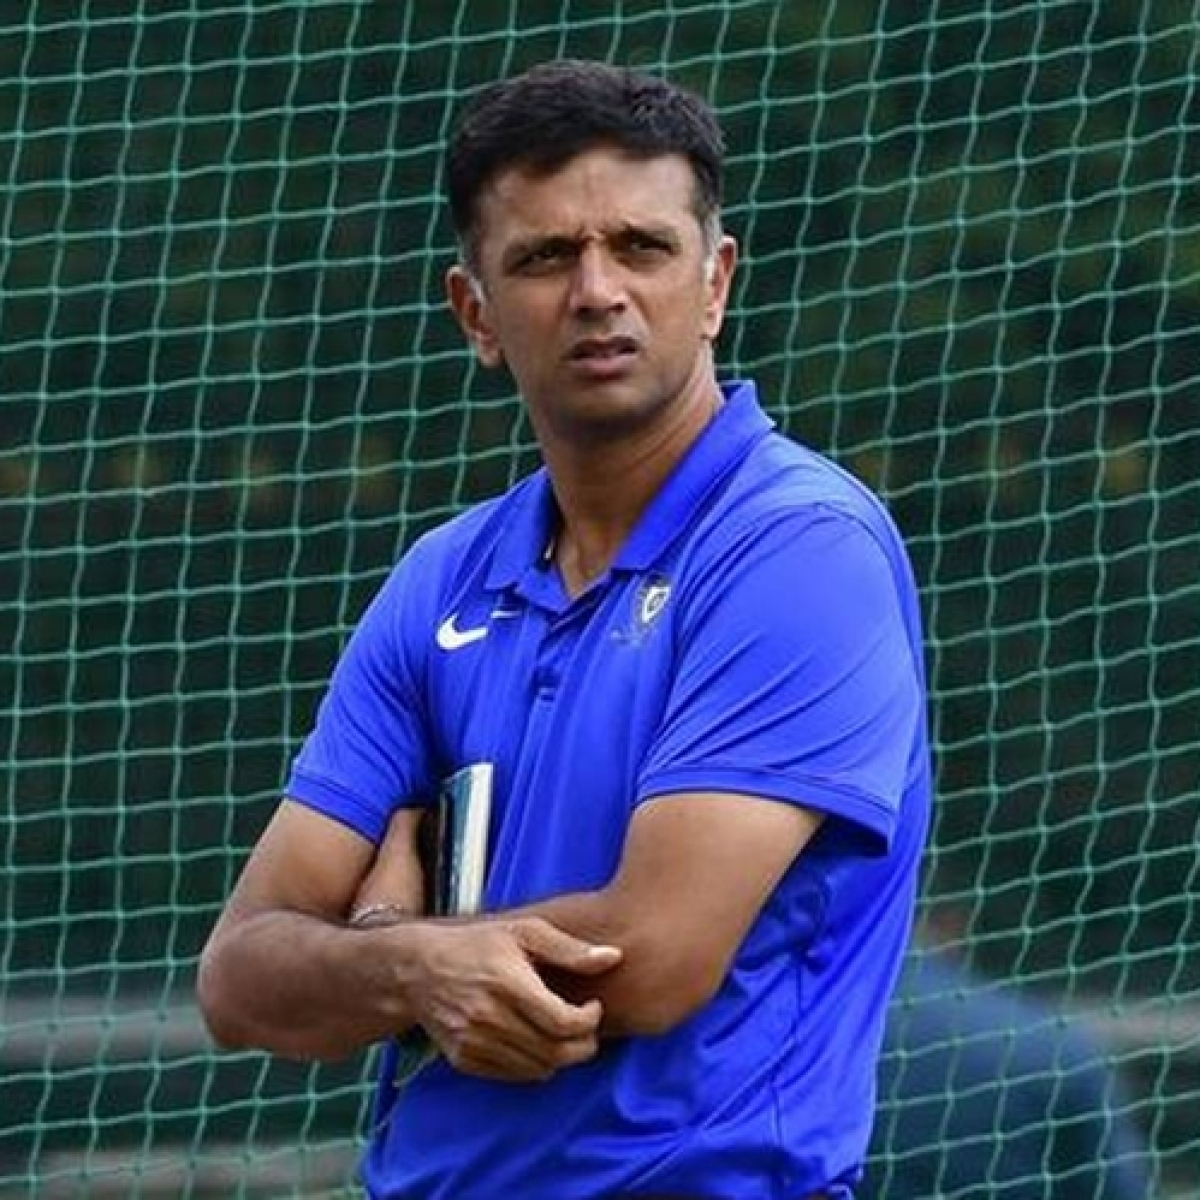 Rahul Dravid asked to depose before BCCI's ethics officer for second time